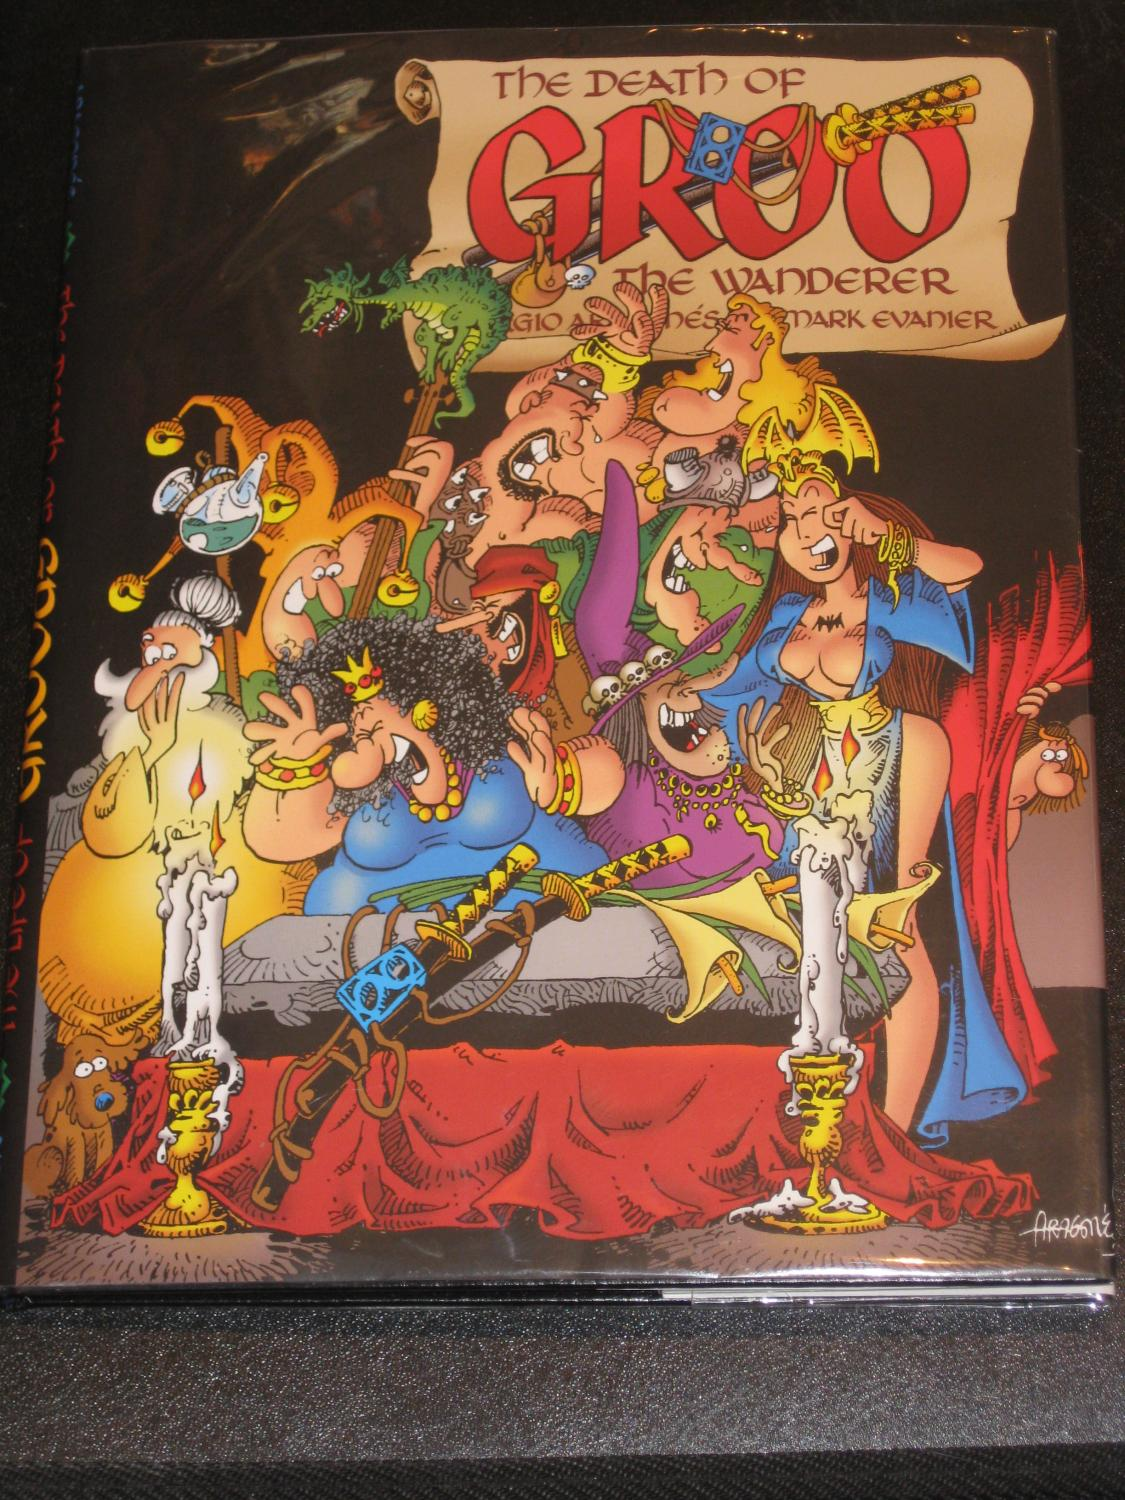 The Death of Groo The Wanderer and The Life of Groo The Wanderer: Mark Evanier